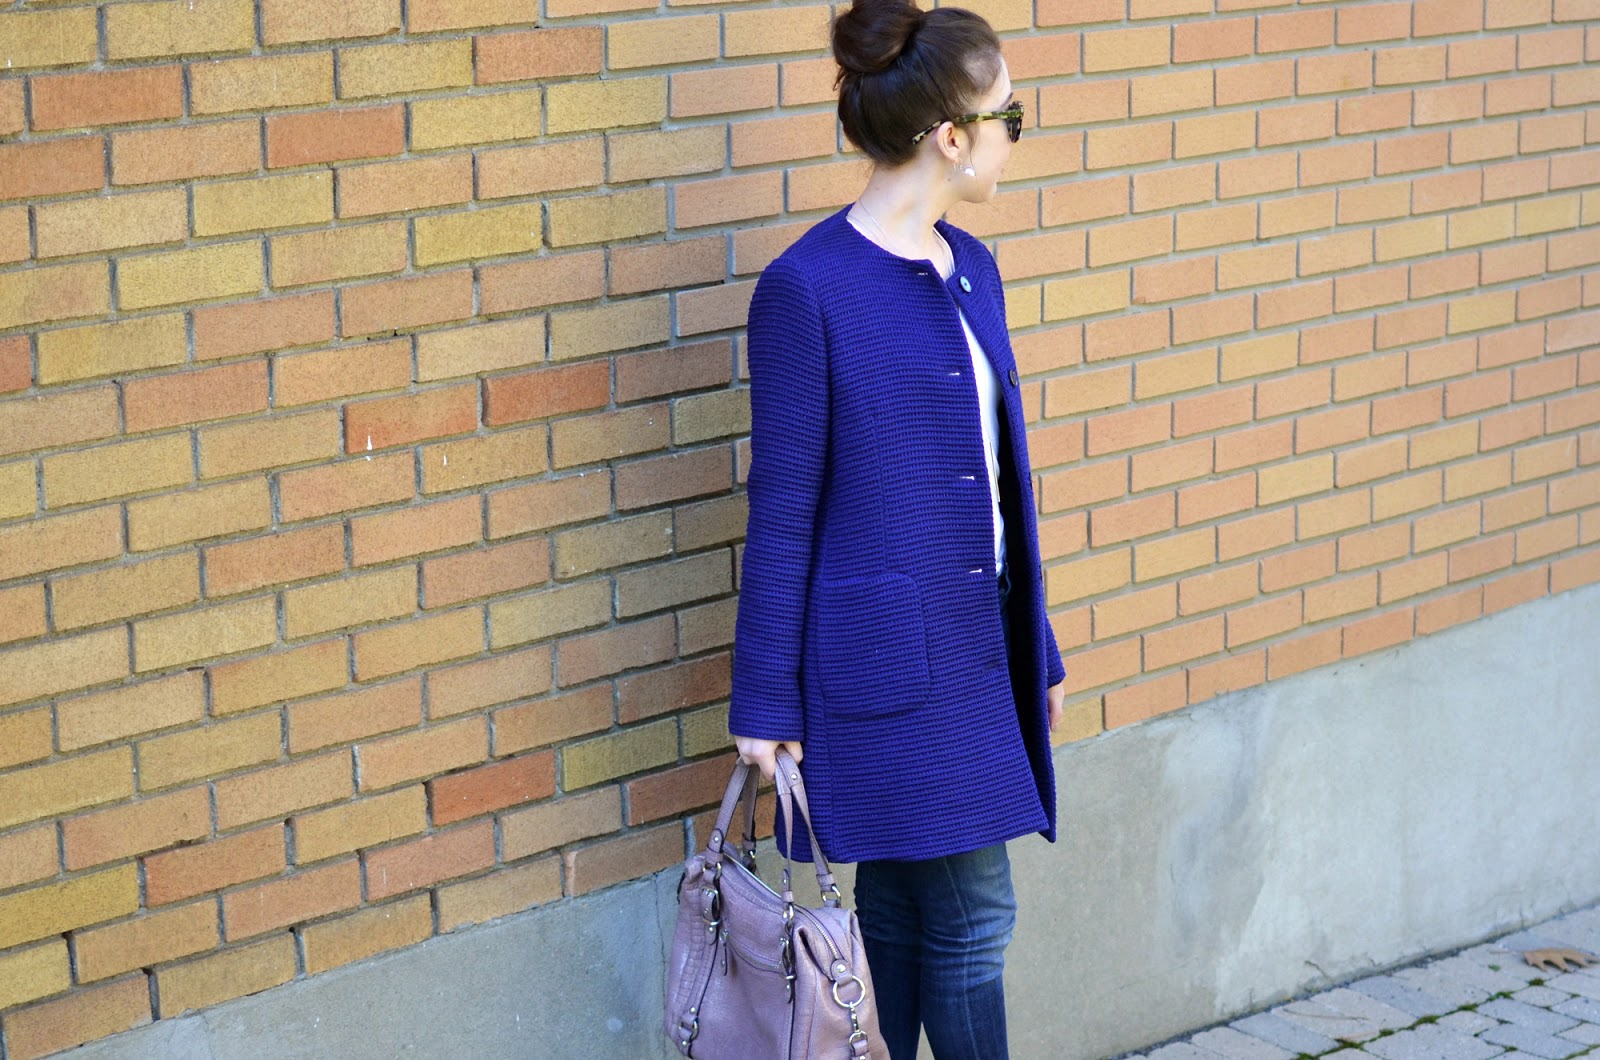 Casual autumn OOTD ft. my purple Zara coat, Citizens of Humanity Jeans, Coach bag, and Warby Parker sunglasses